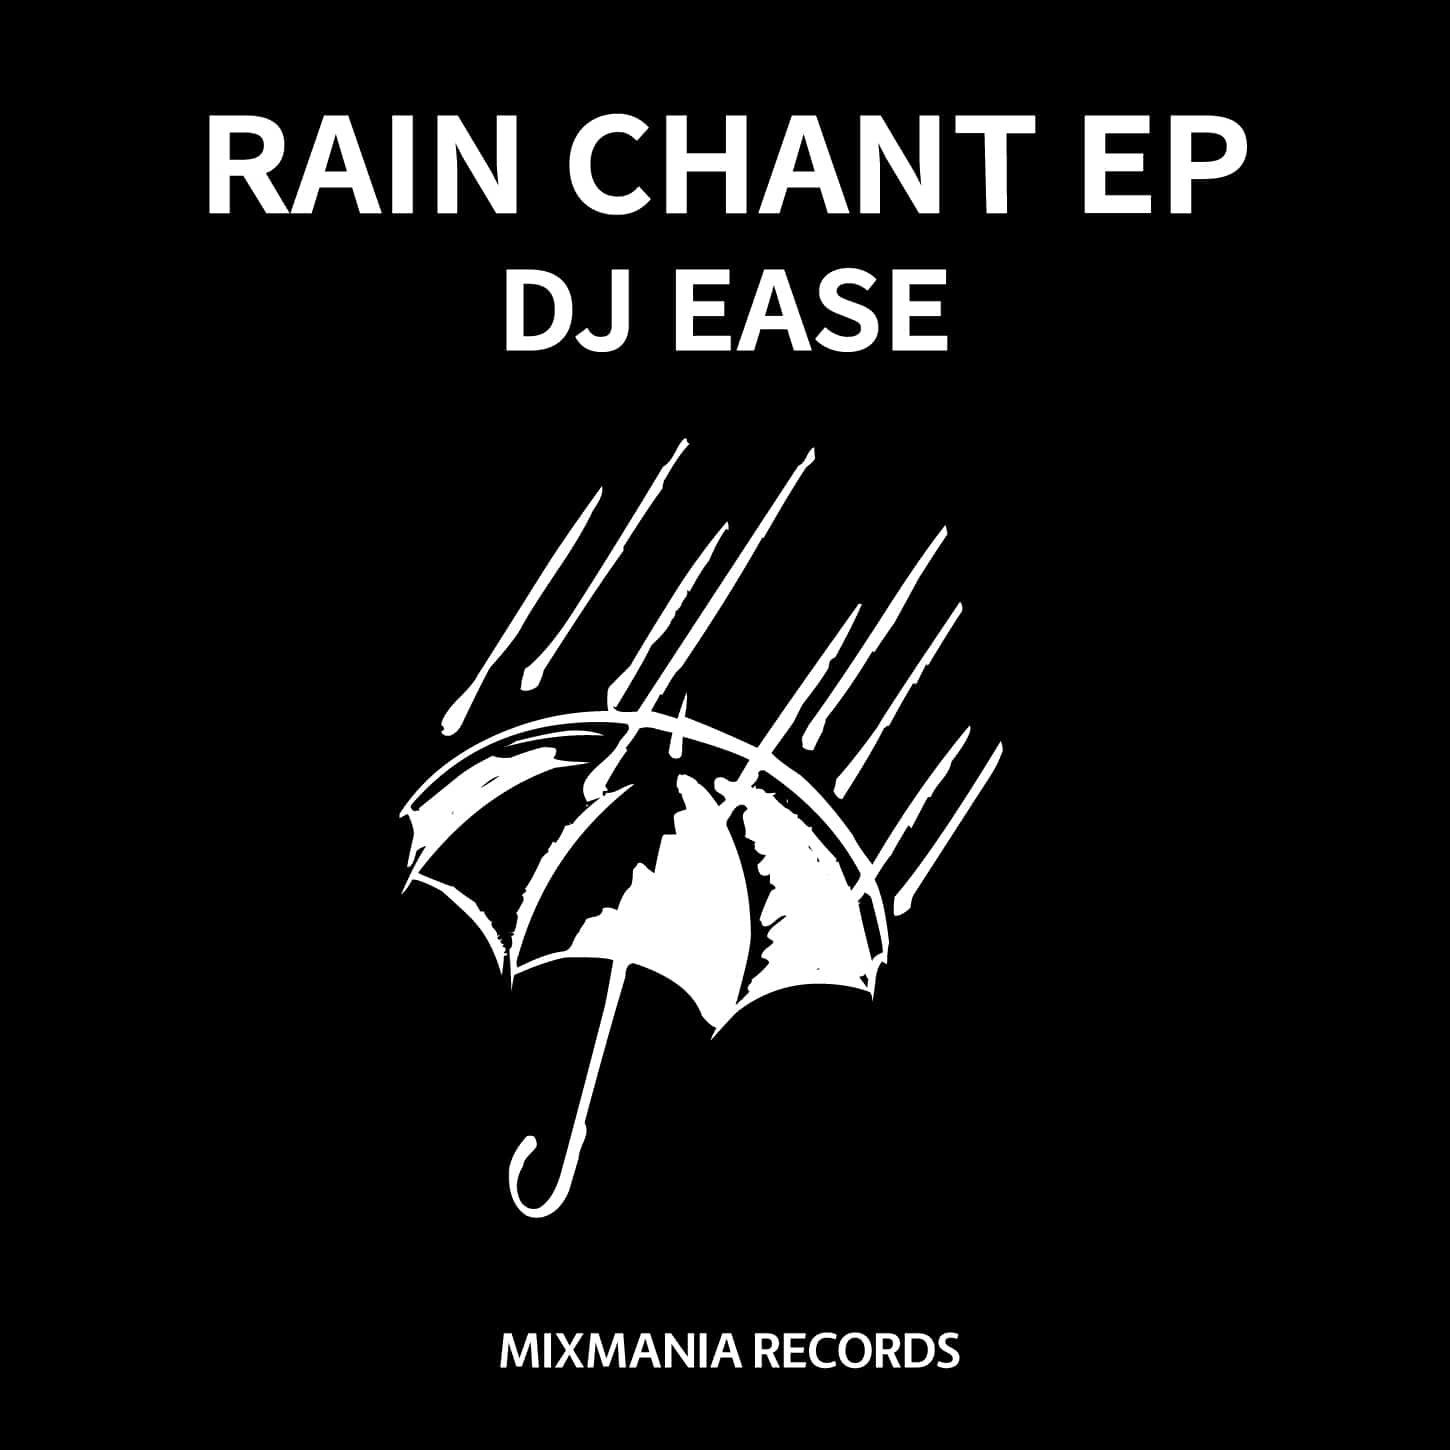 Rain Chant EP BY Dj Ease Art Work